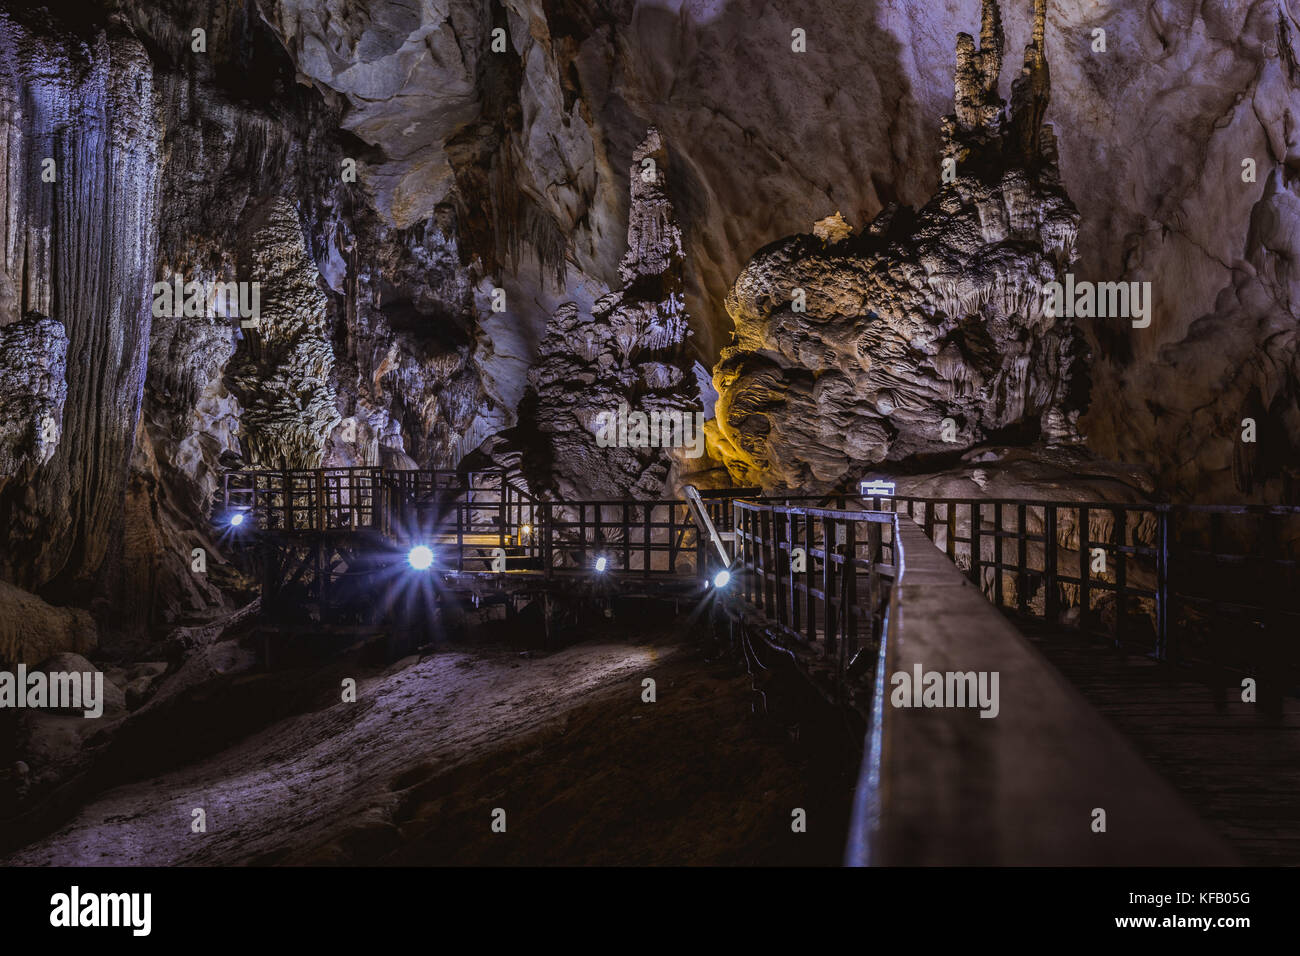 Vietnam's Paradise cave, wonderful cavern at Bo Trach, Quang Binh province, underground beautiful place for - Stock Image